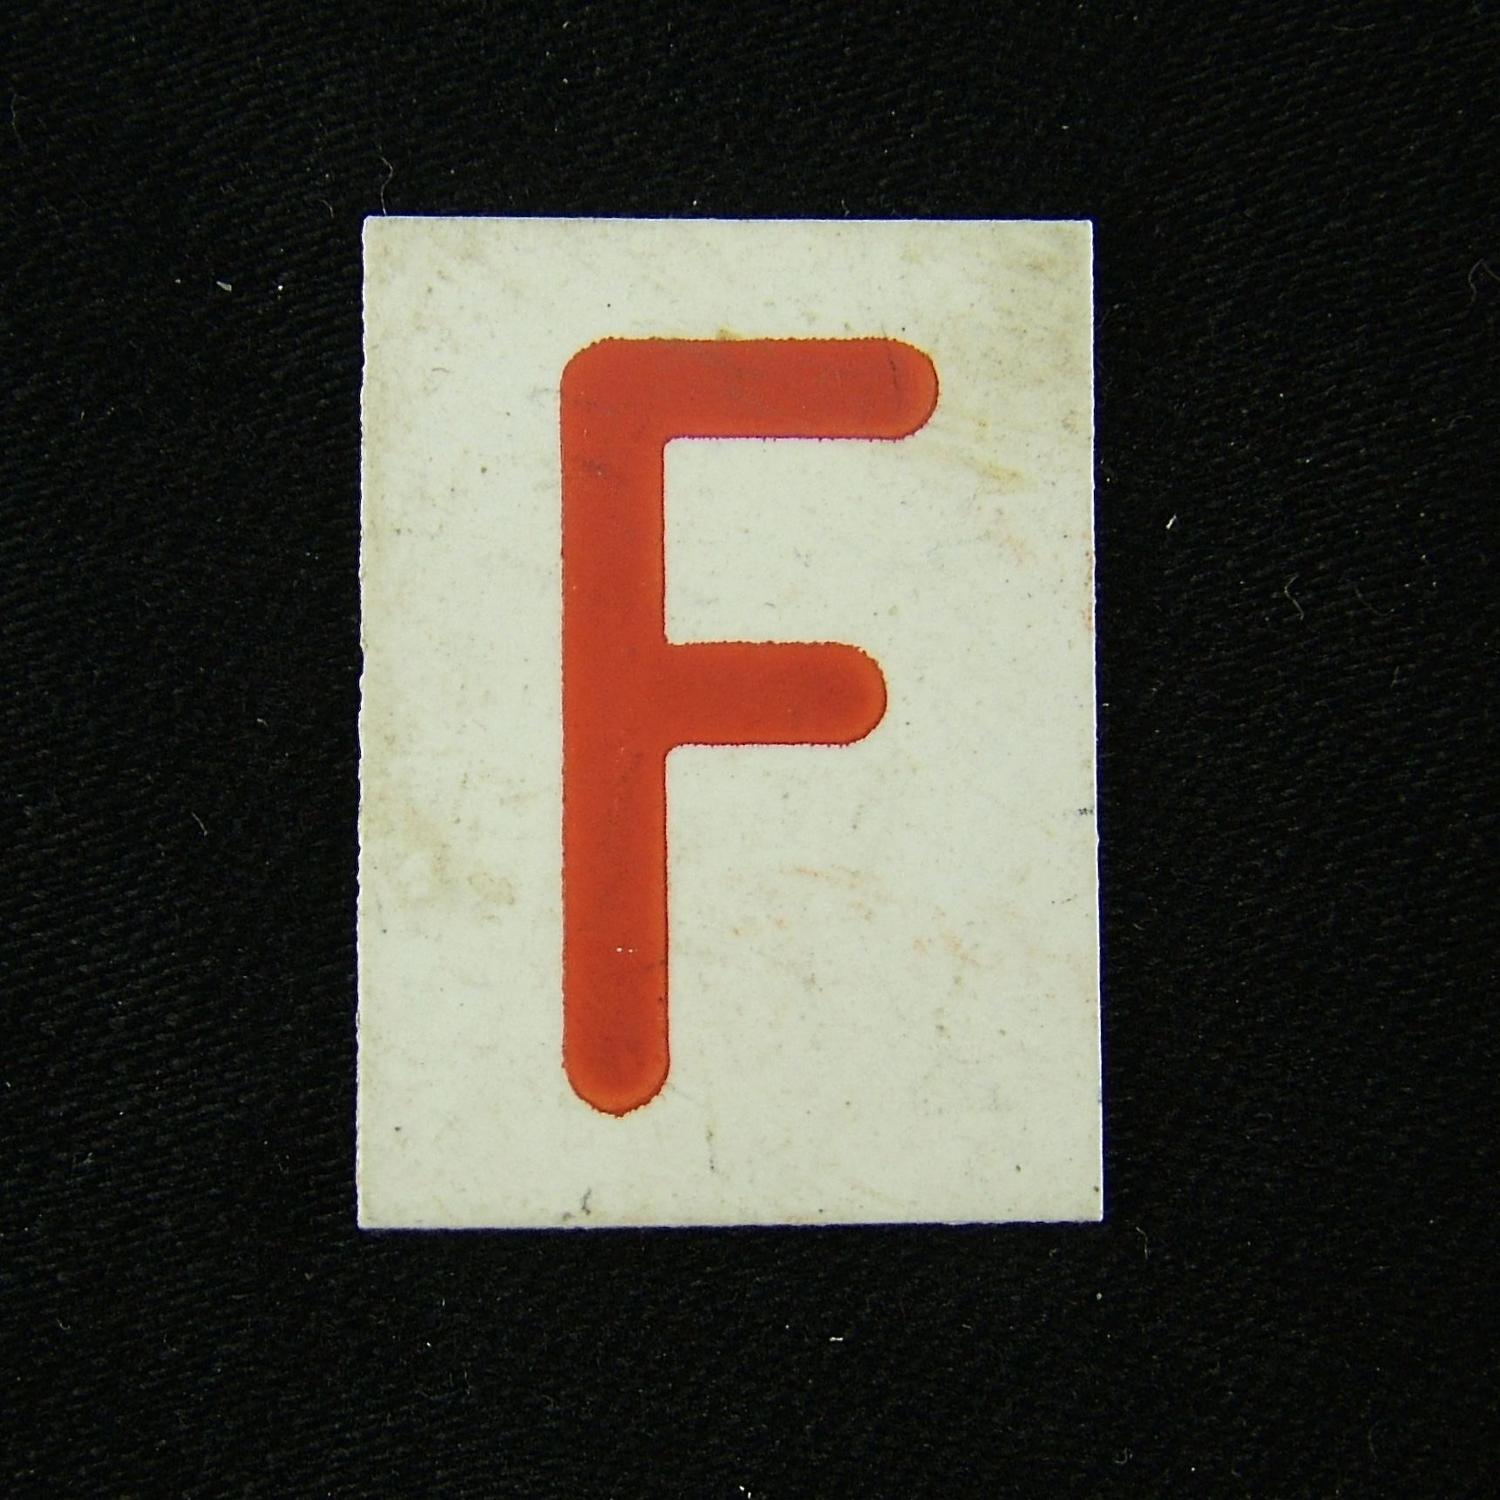 RAF operations room plotting tile 'F'